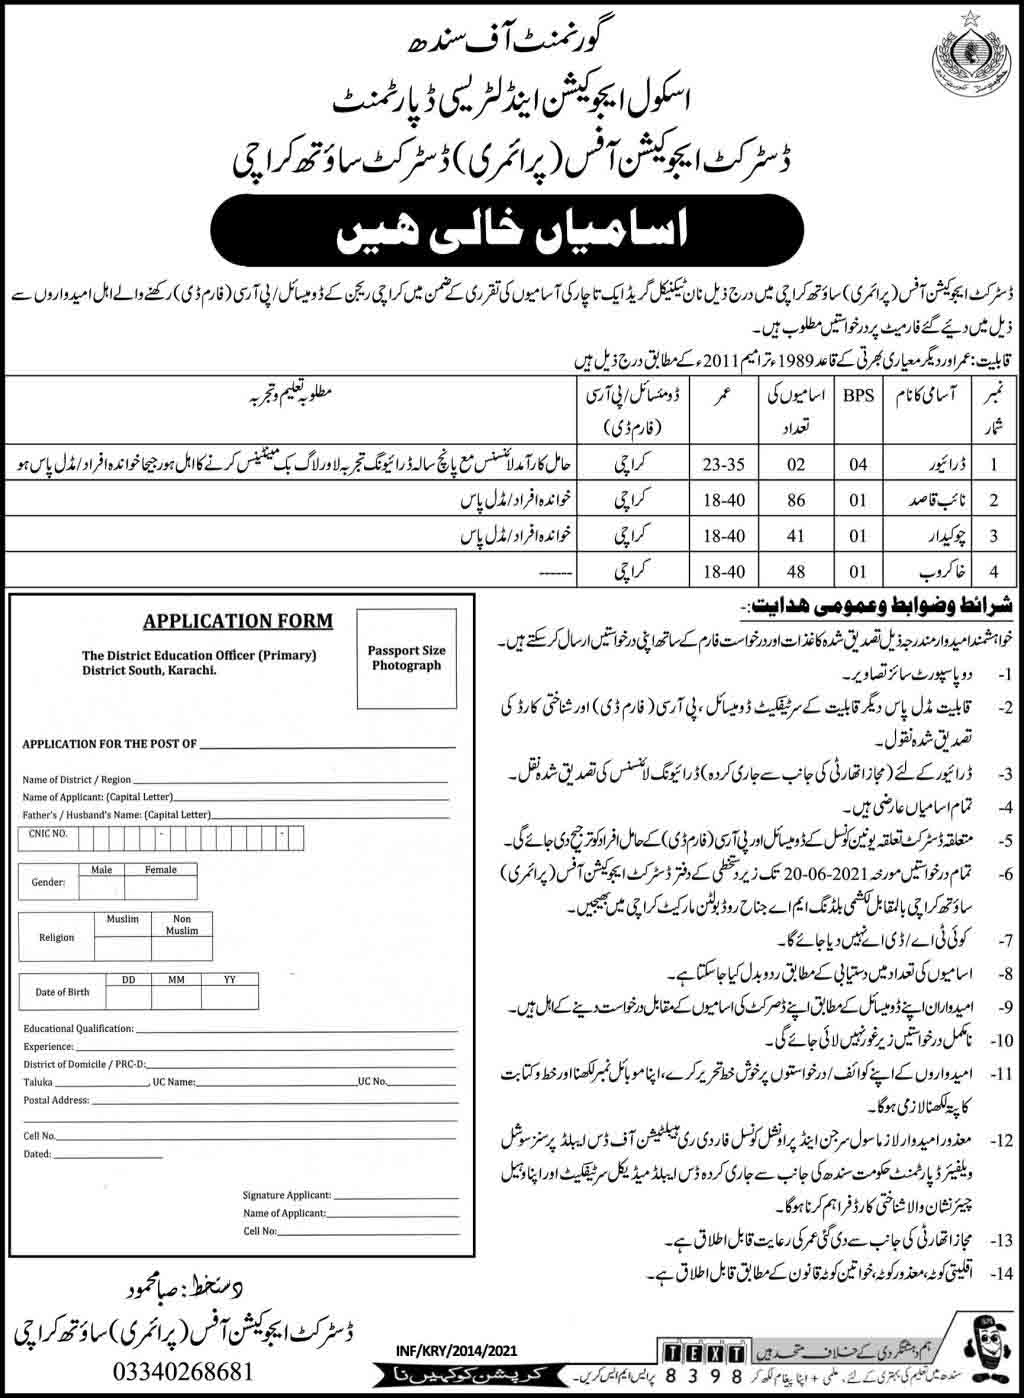 Sindh School Education & Literacy Department Jobs May 2021 (177 Posts)